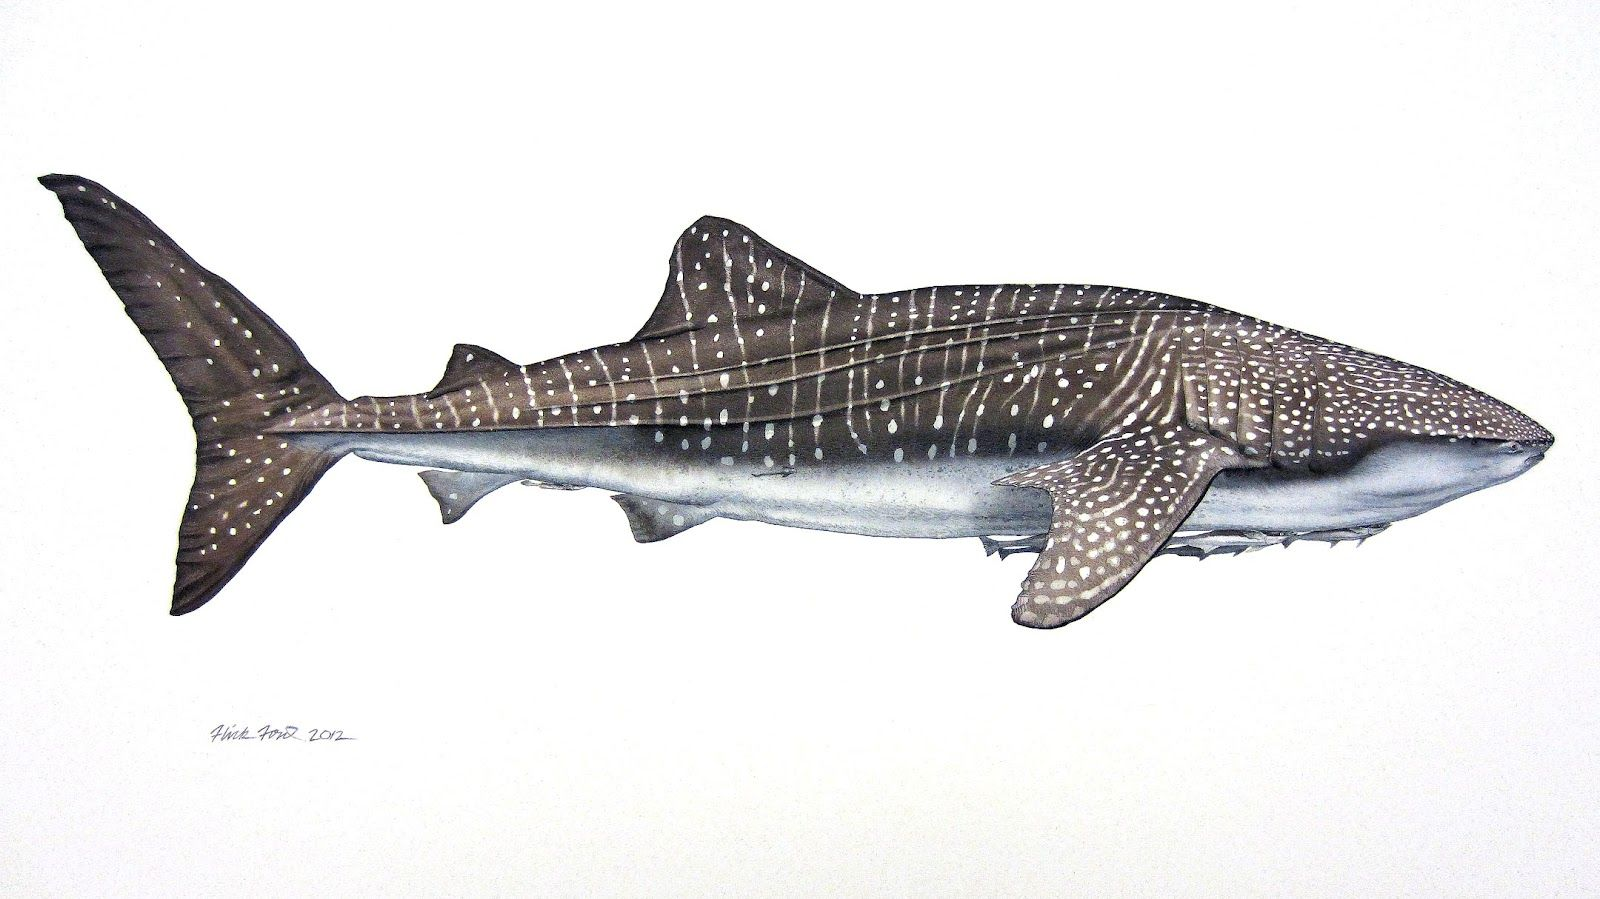 Whale_Shark_and_Remoras-Flick_Ford-Watercolor-trampt-66702o.jpg (1600×899)